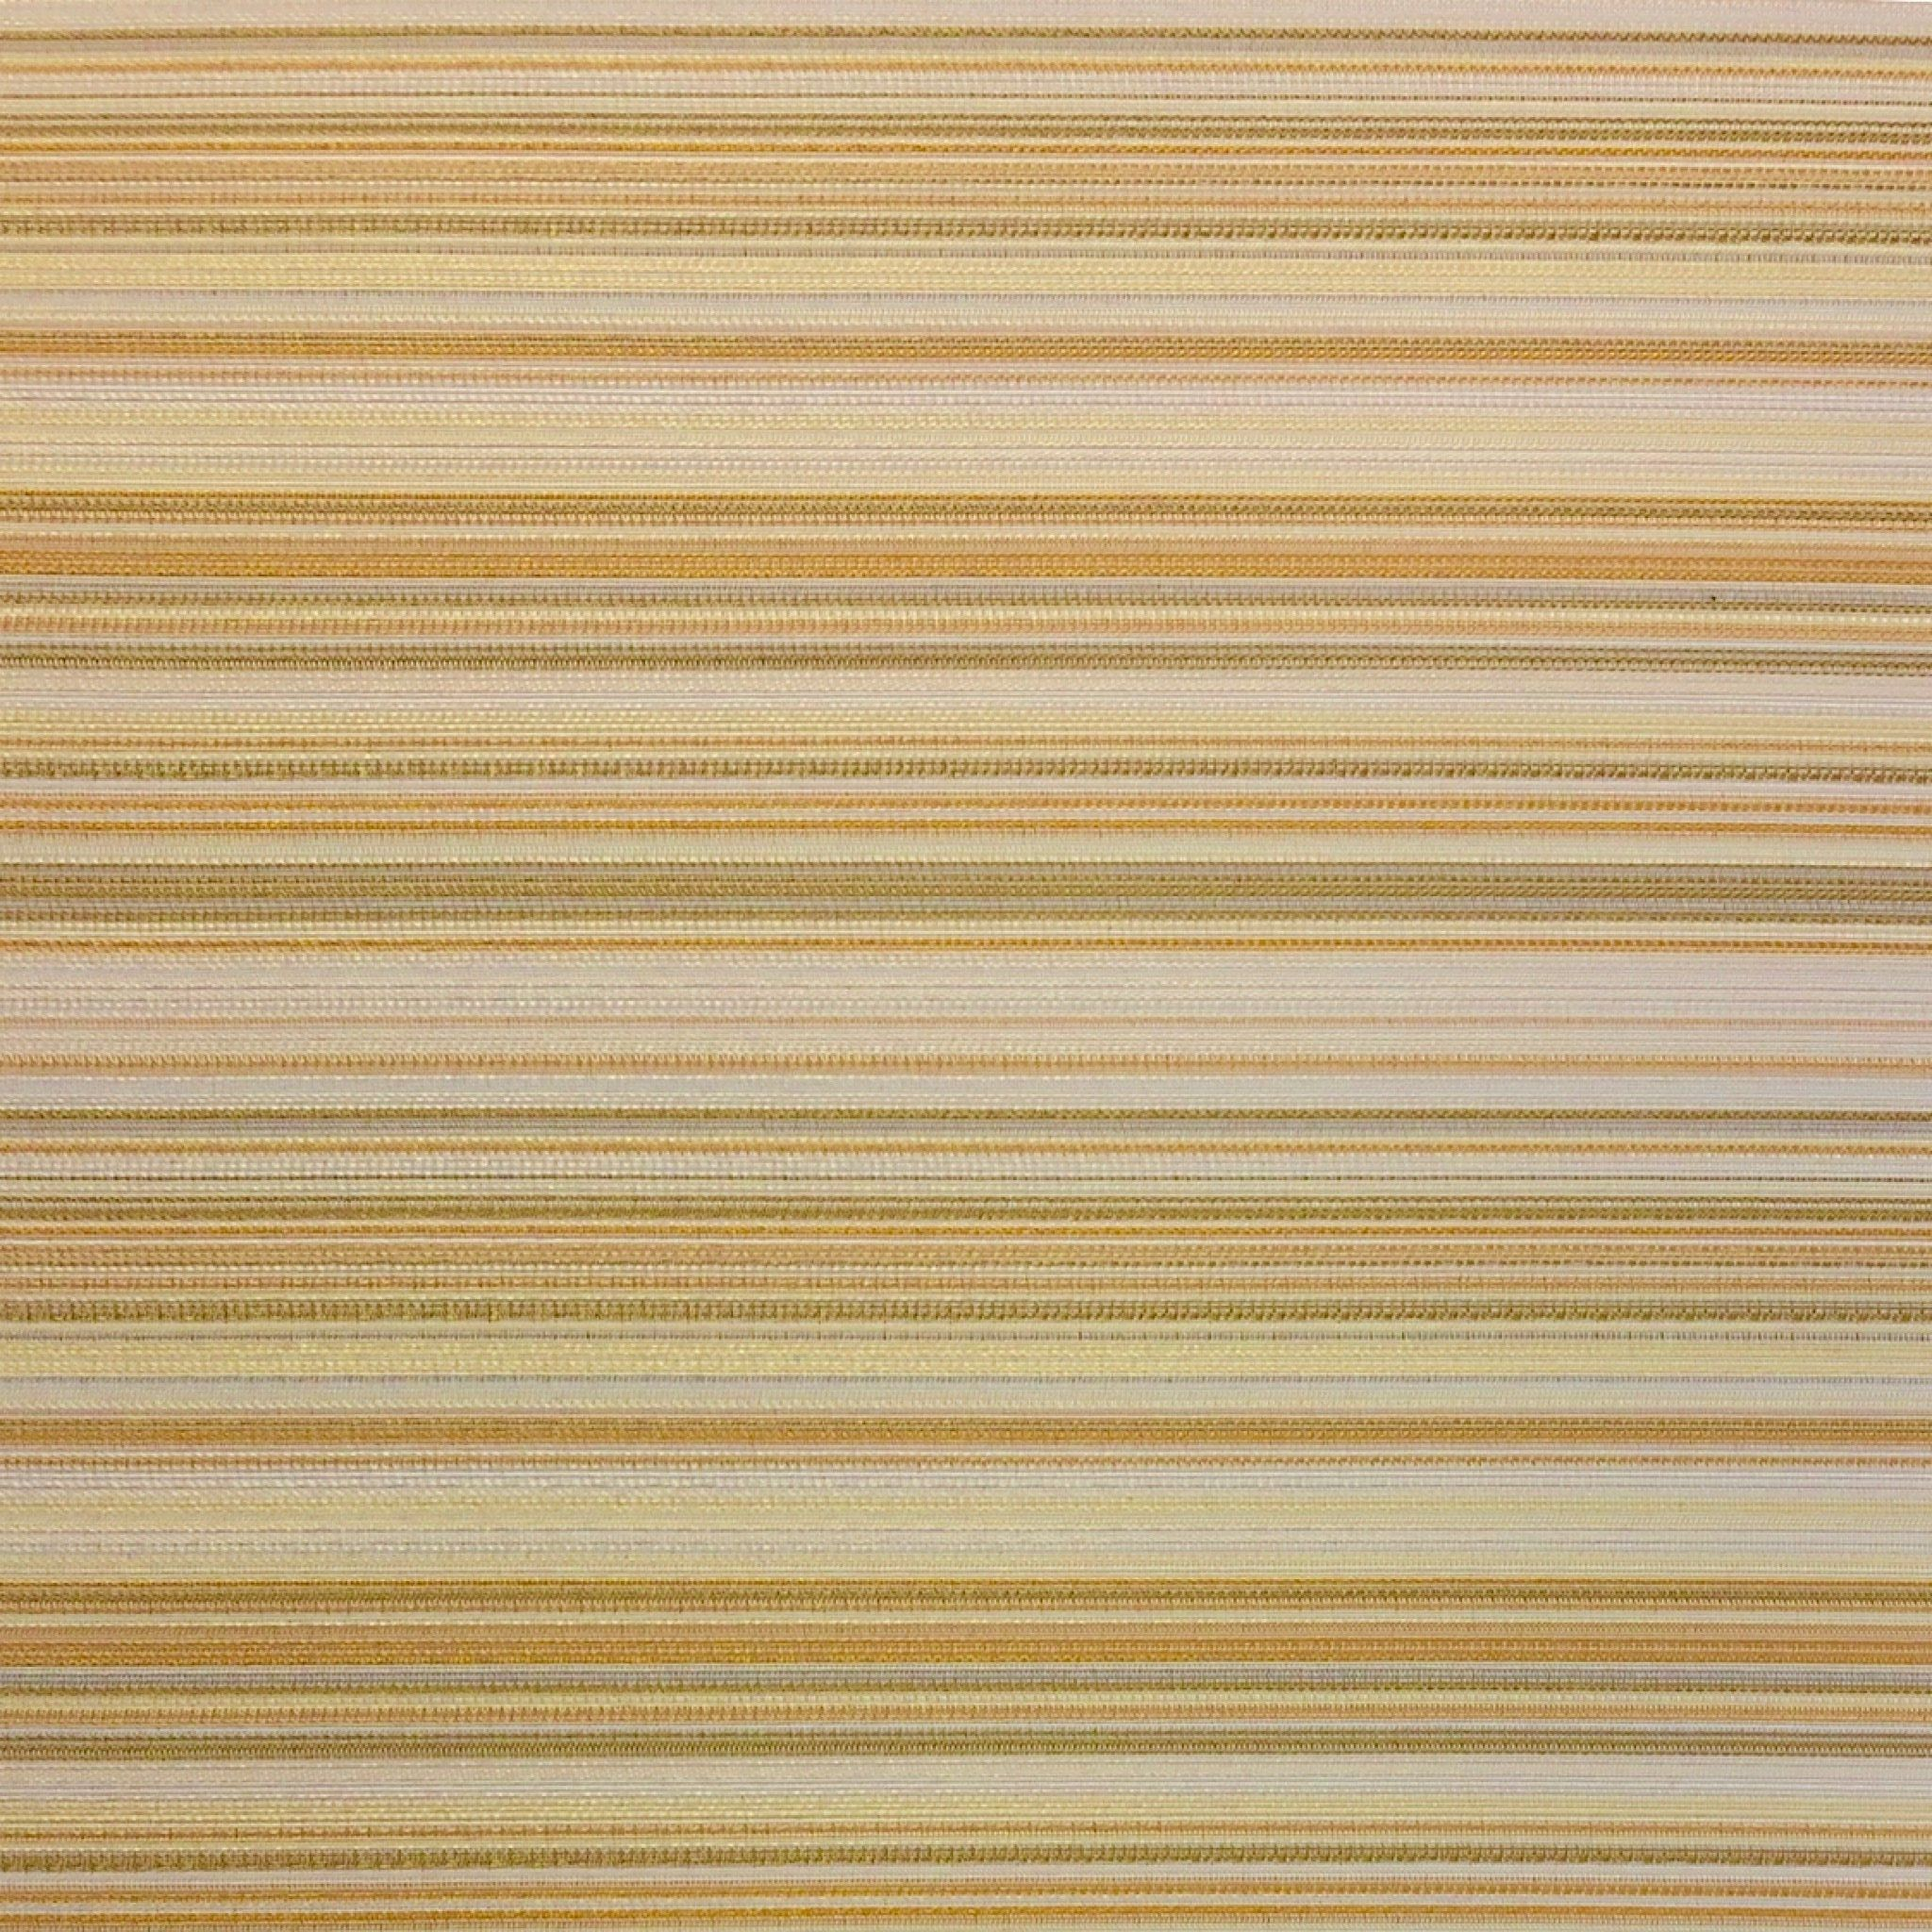 Cream Lines Curtain Fabric - Pound Fabrics